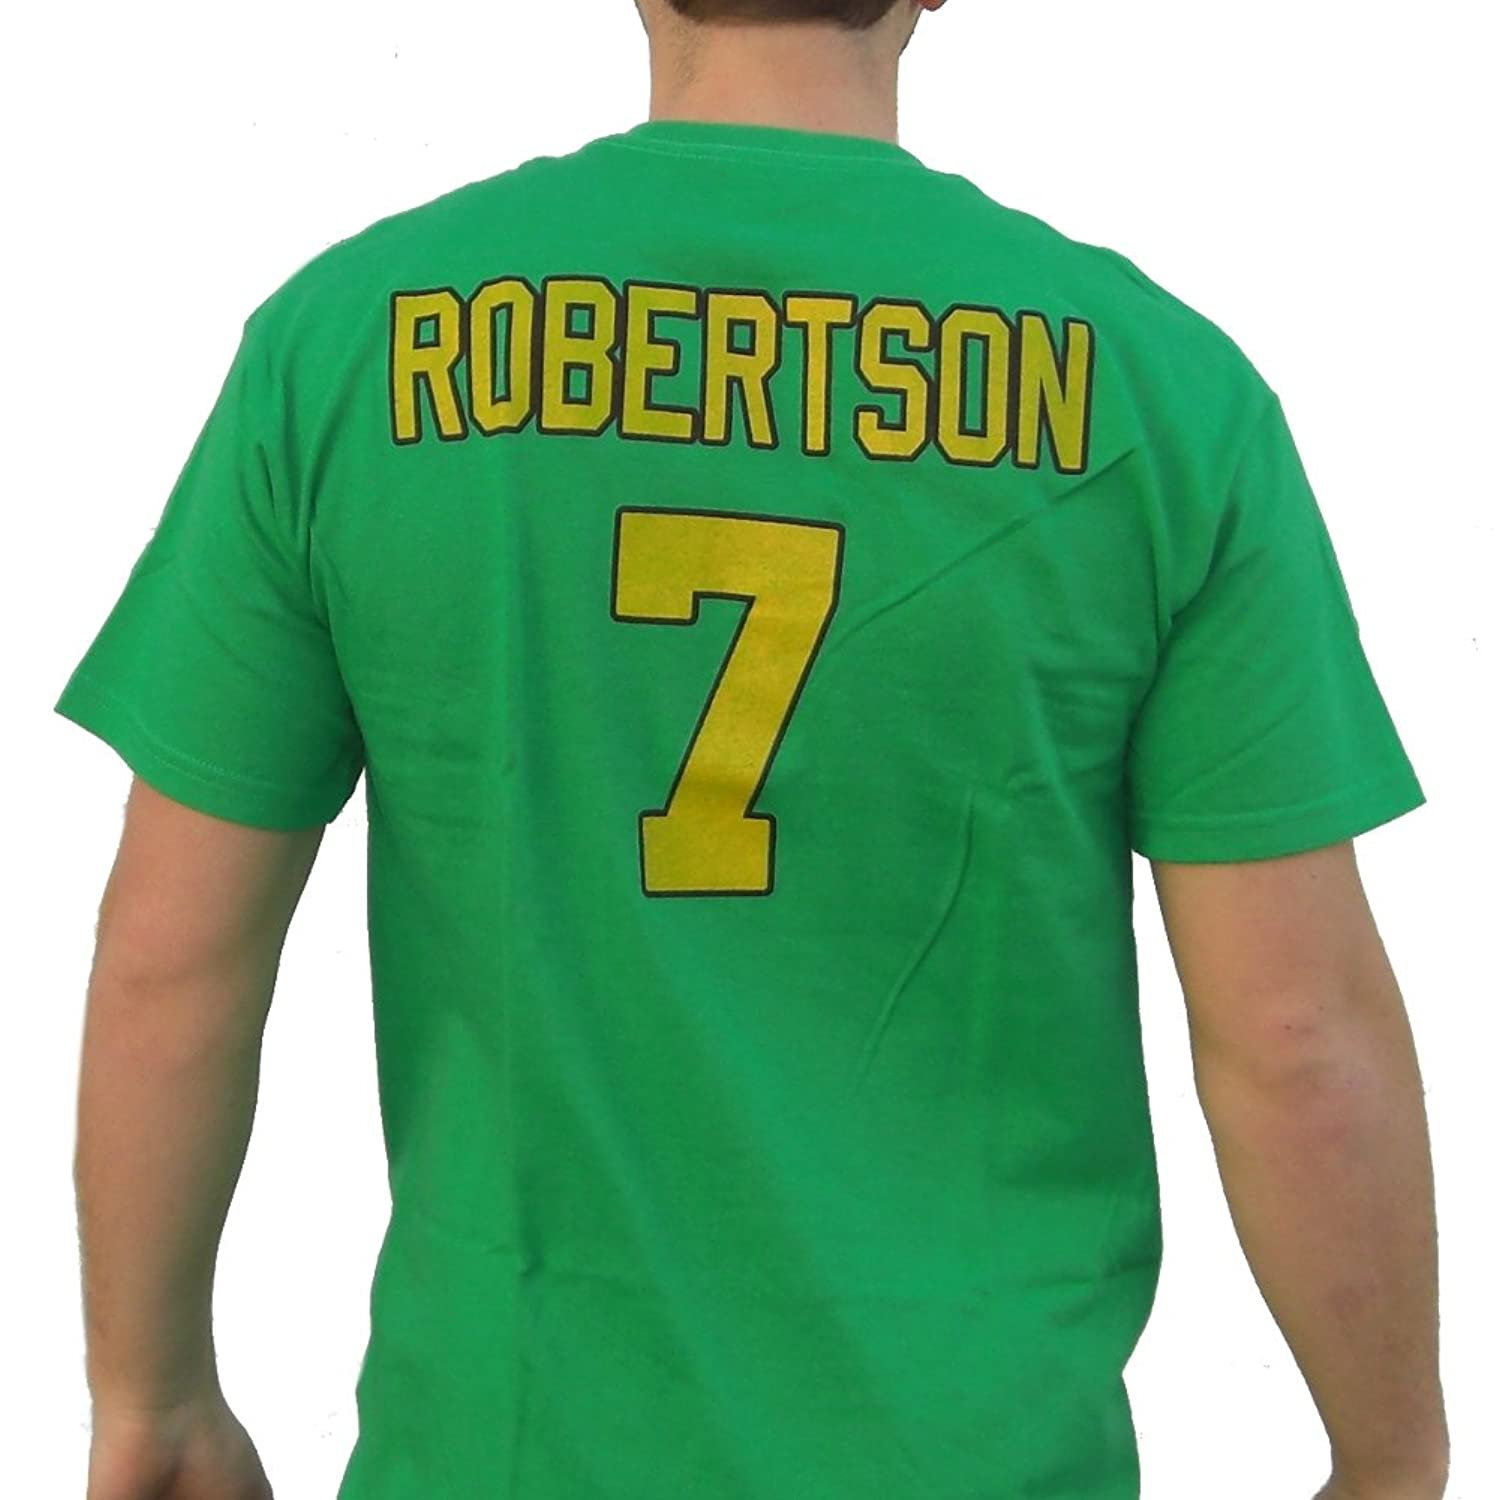 Dwayne Robertson #7 Mighty Ducks Movie Jersey T-Shirt Hockey Costume D2 90s